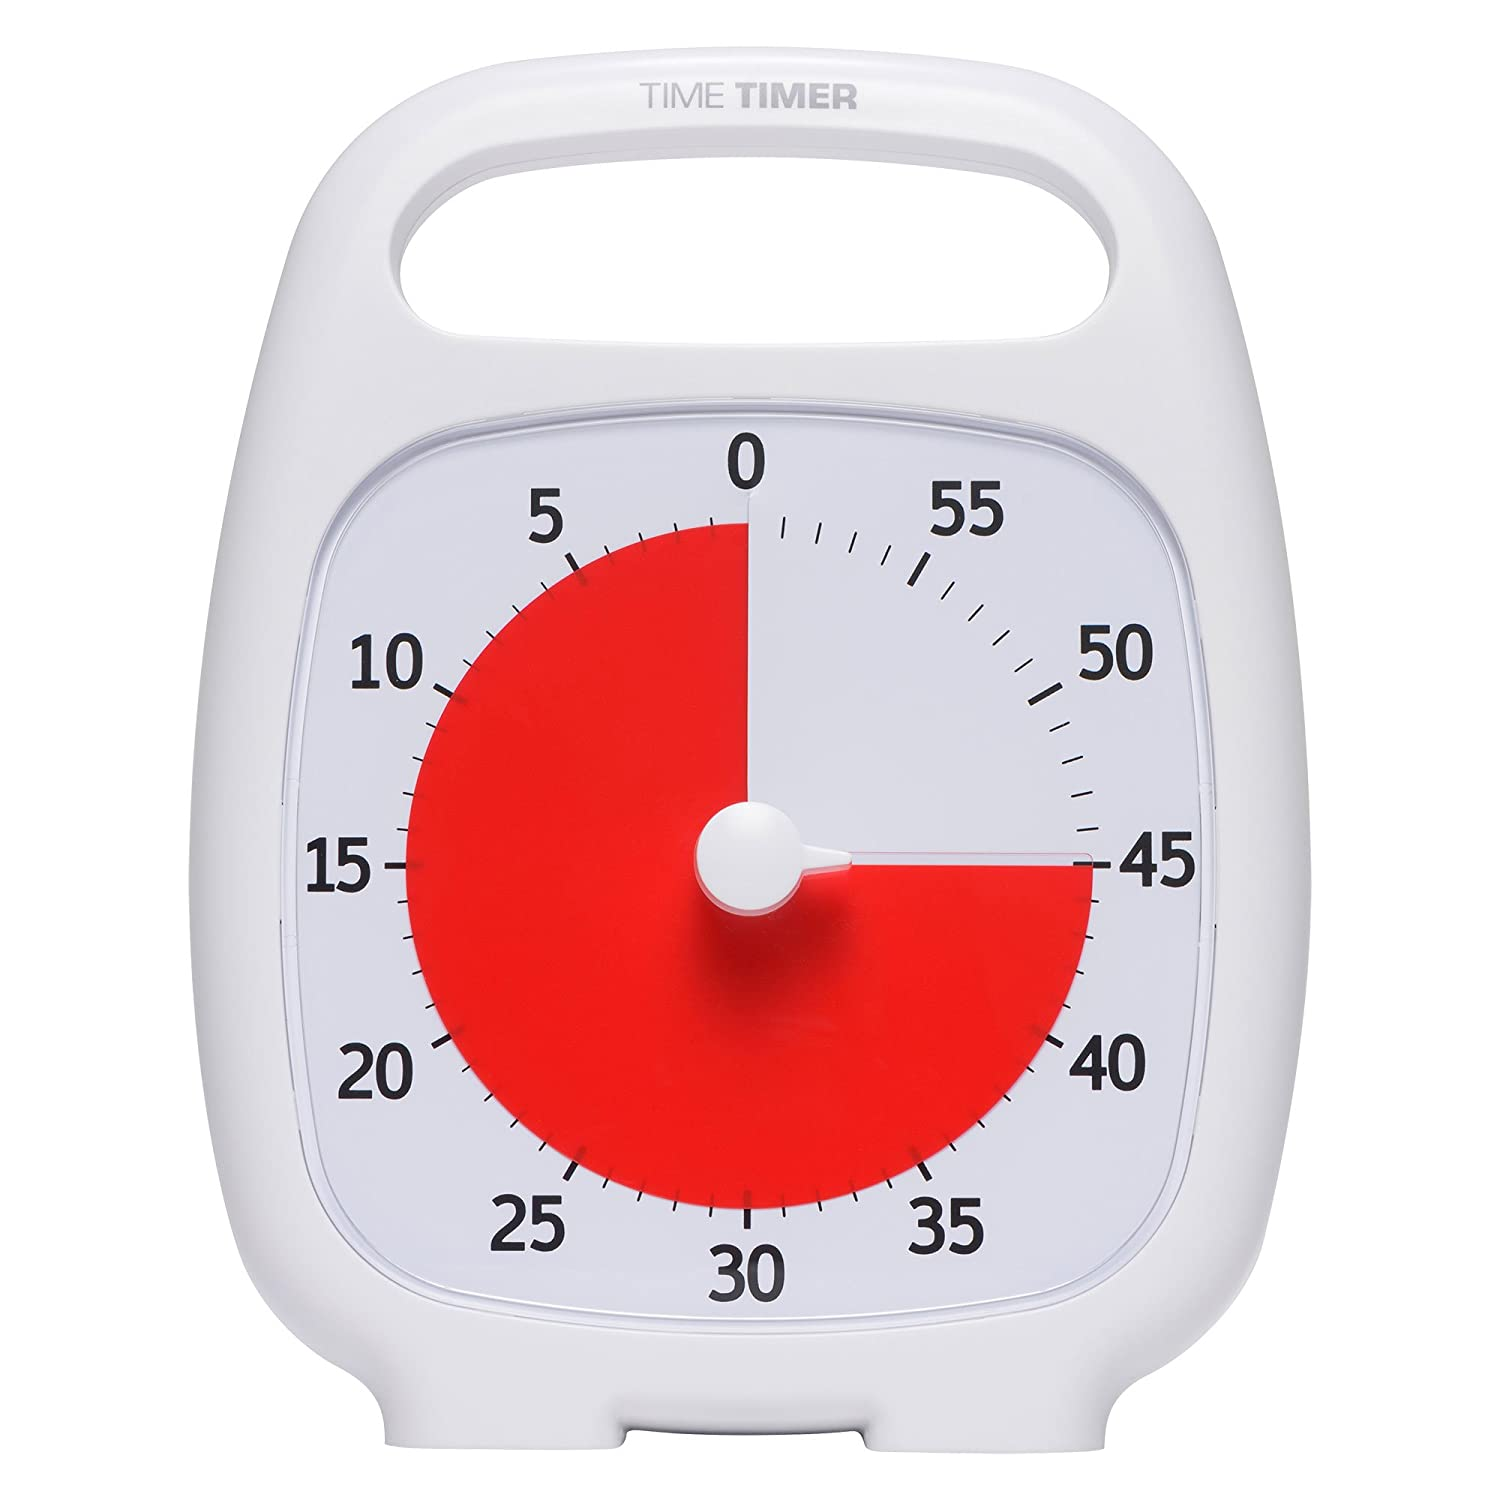 Time Timer PLUS 60 Minute Visual Analog Timer (White) Optional Alert (VolumeControl Dial) No Loud Ticking; Time Management Tool